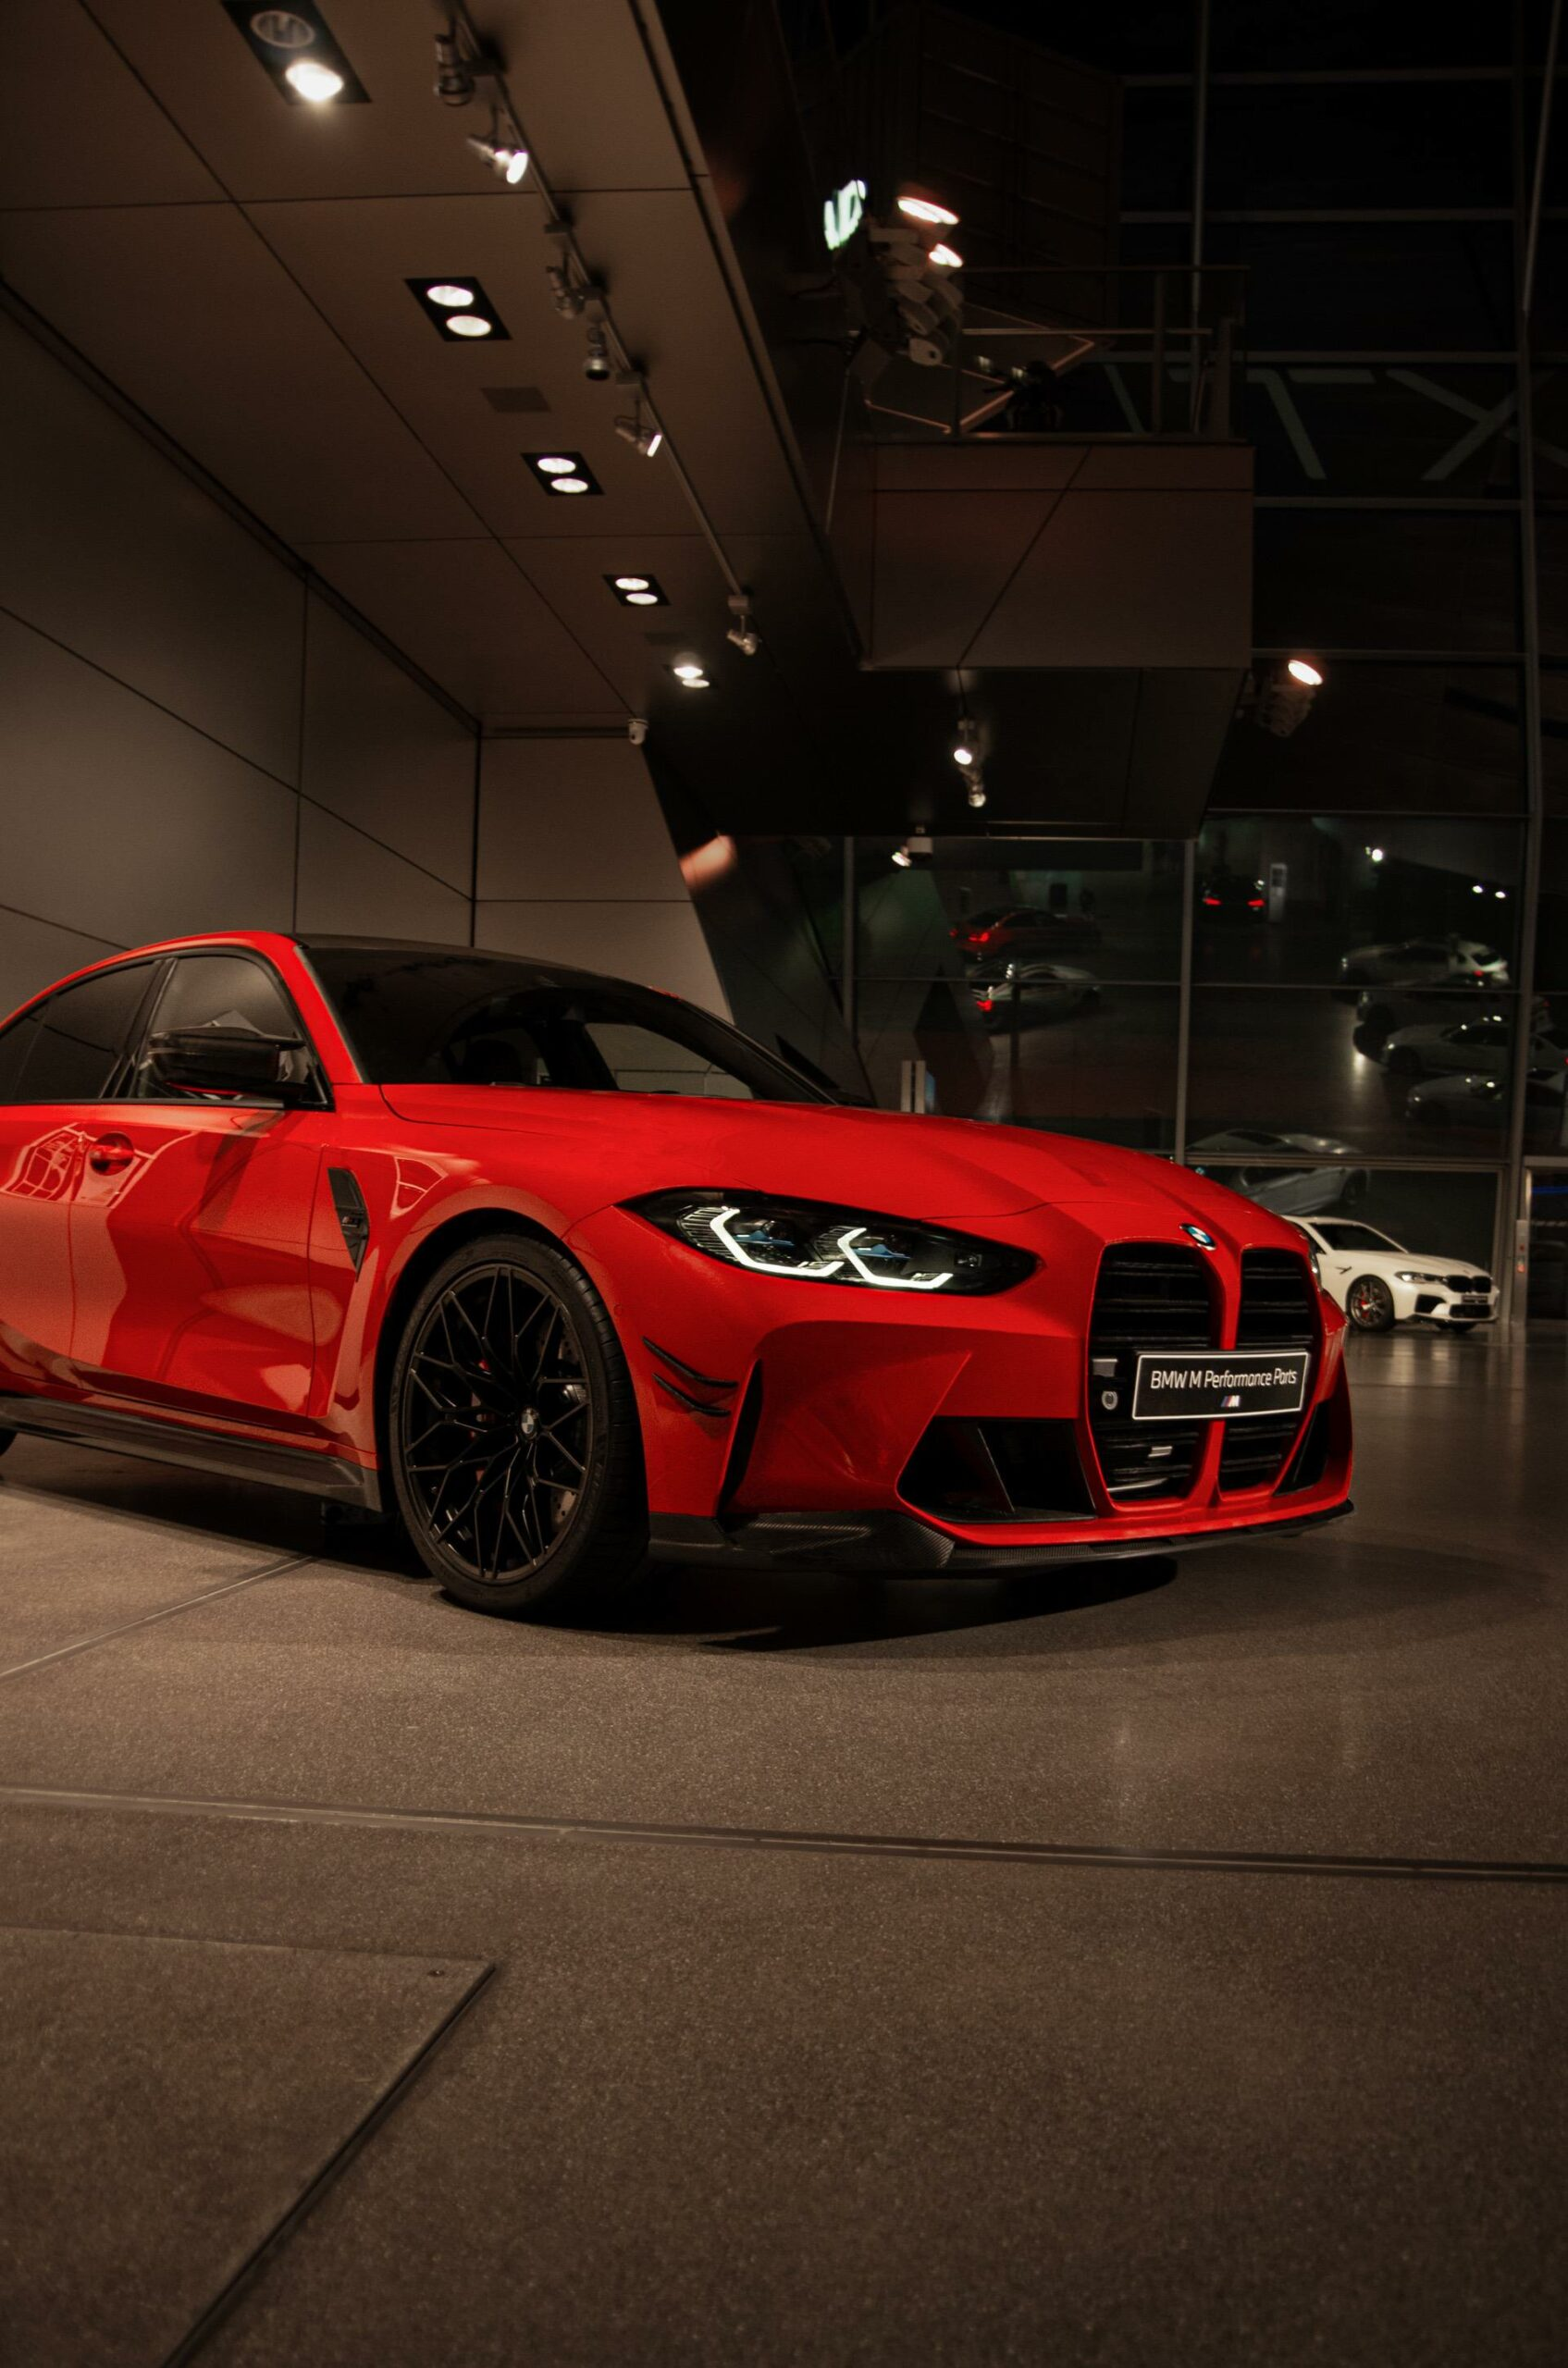 bmw m4 m performance parts toronto red 03 scaled